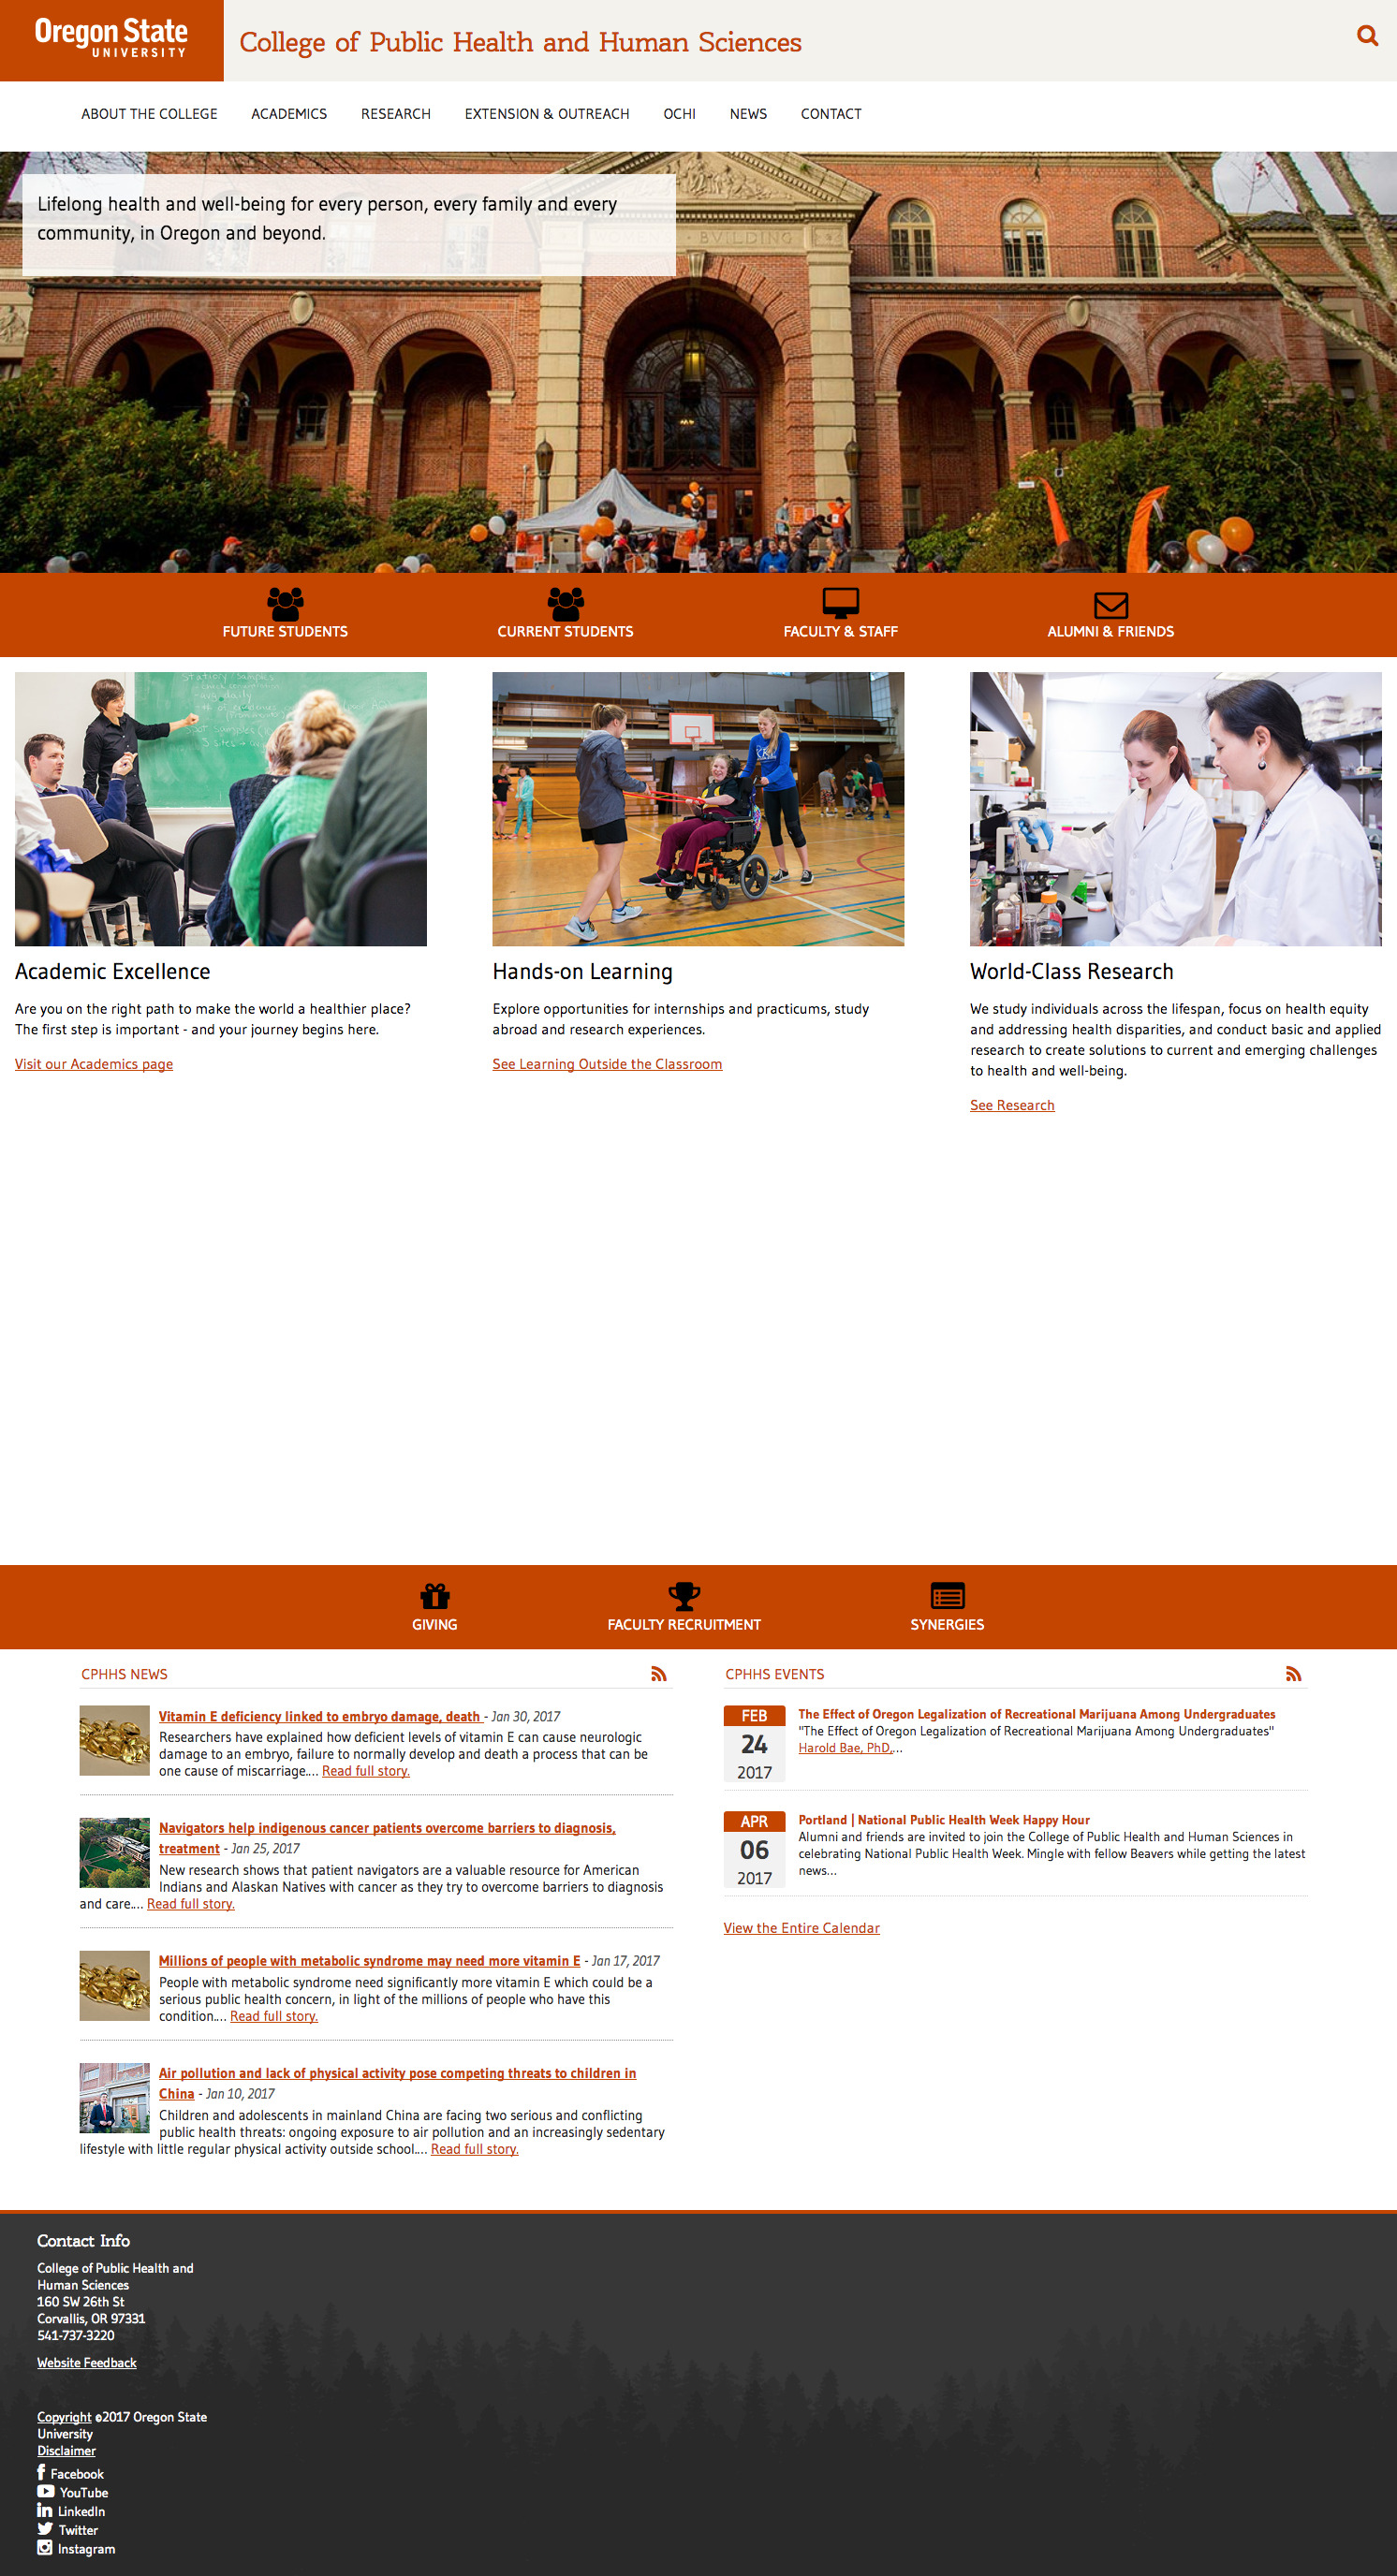 Oregon State University College of Public Health Home Page - 2017